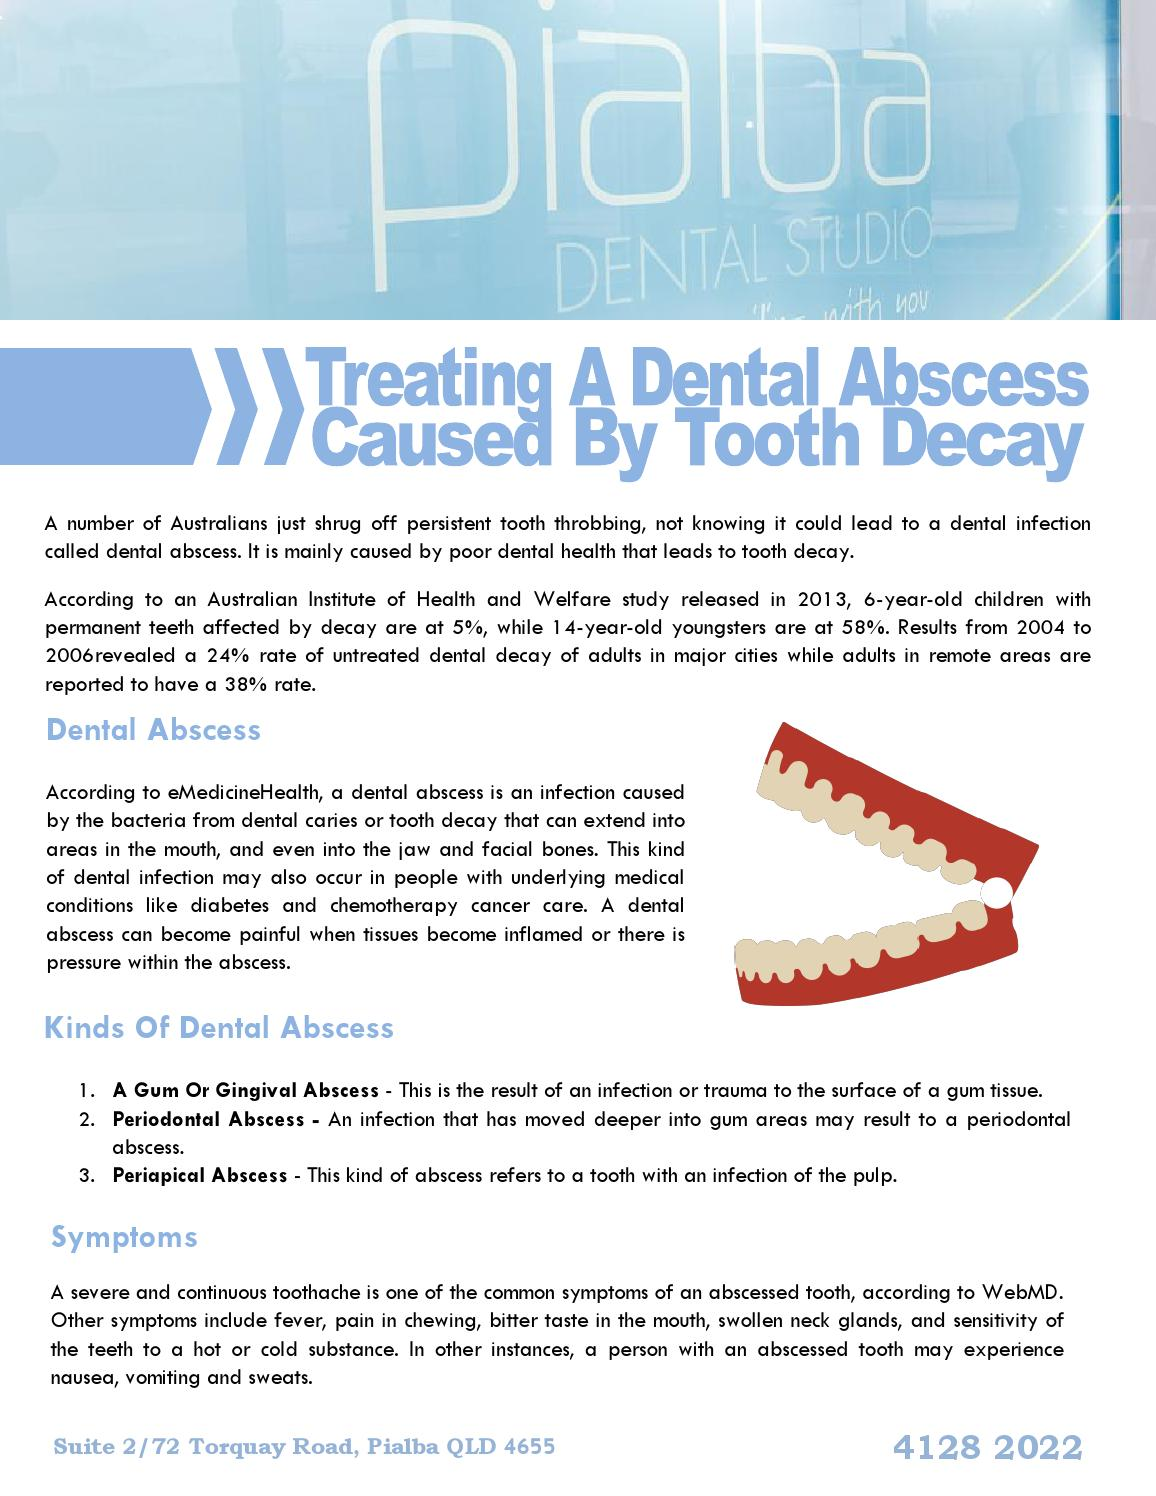 Treating a dental abscess caused by tooth decay by